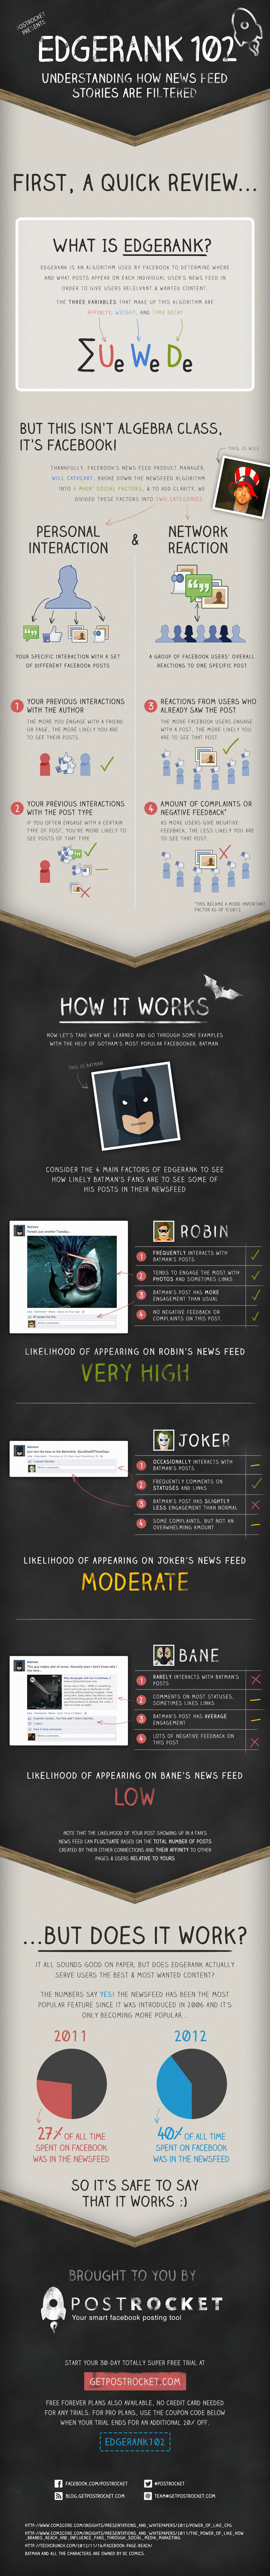 Who Is More Likely To See Your Posts On the Facebook News Feed? [Infographic] - socialmouths